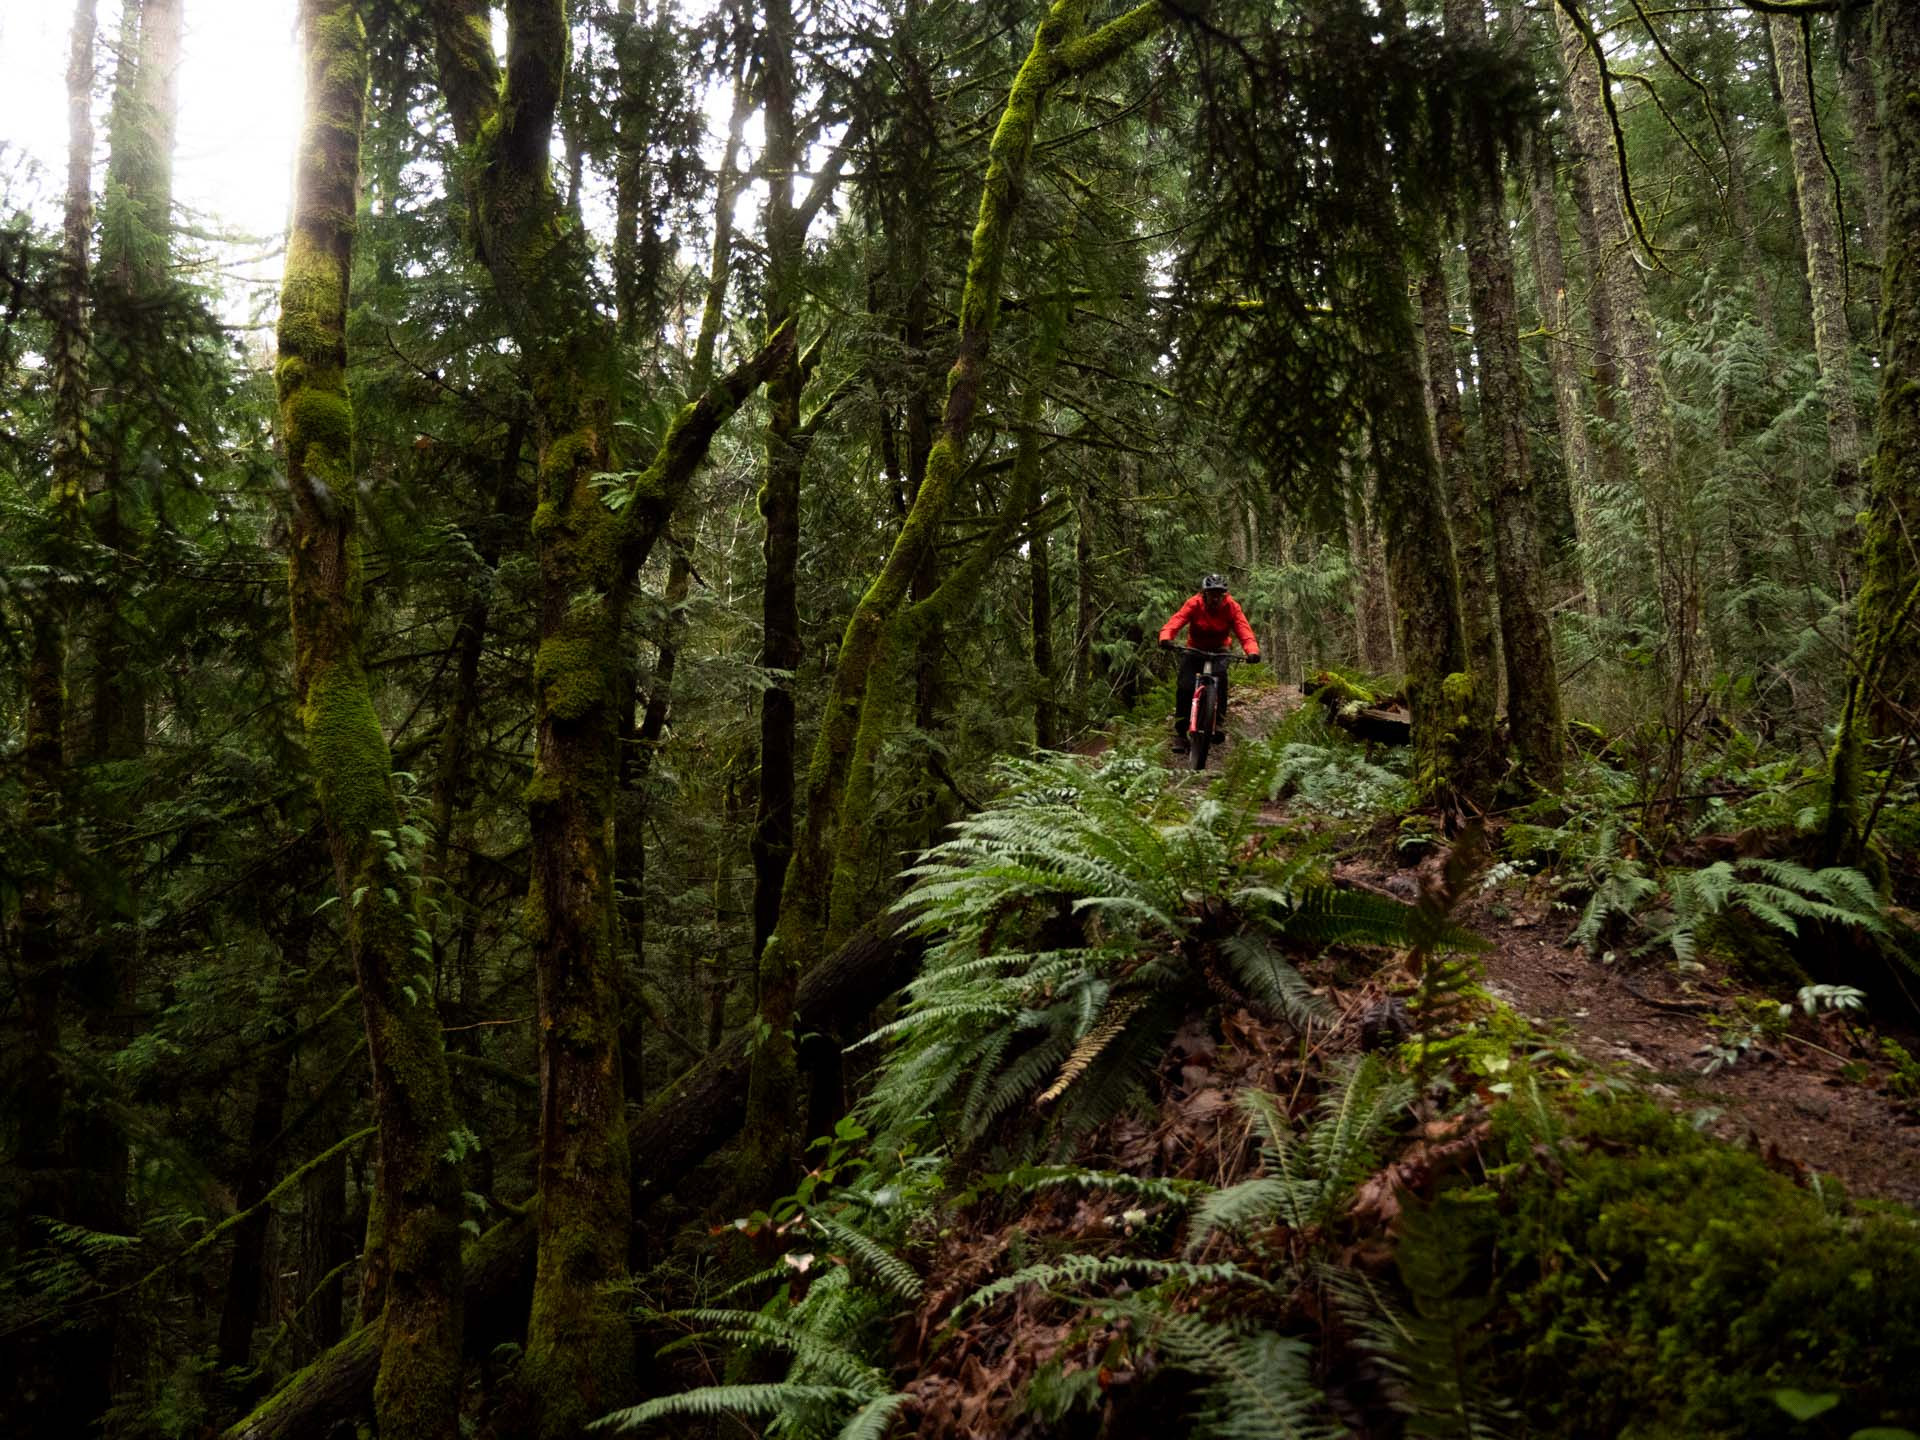 Rich, floating above the forest floor on the Ripmo's DW-link V-5 suspension.